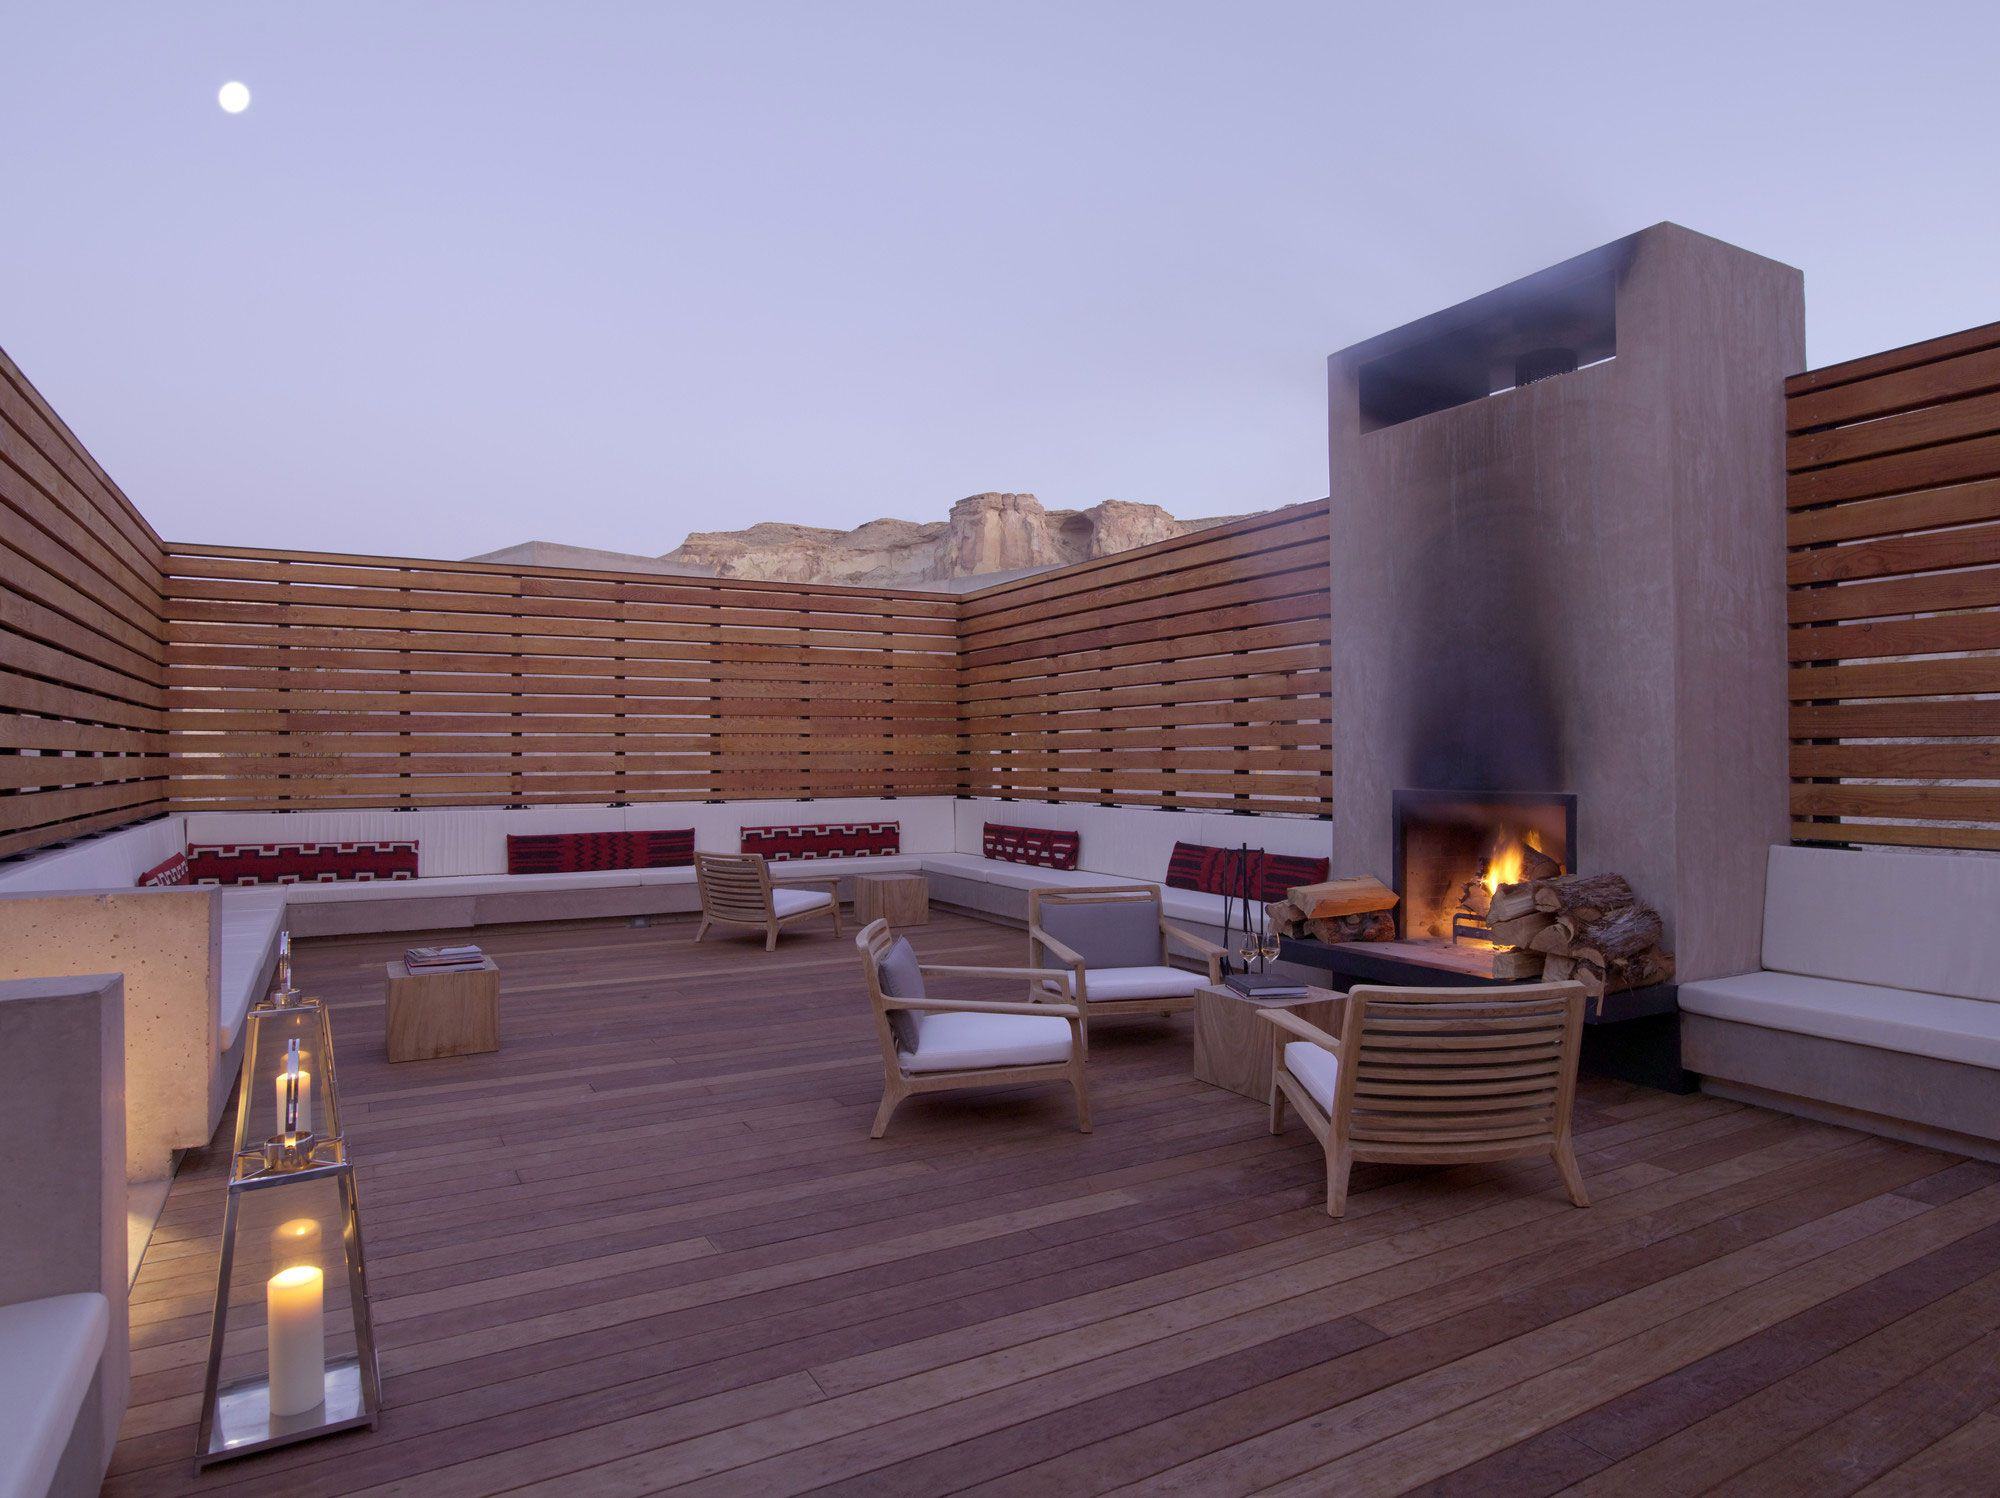 Amangiri-Luxury-Resort-Hotel-in-Canyon-Point-16